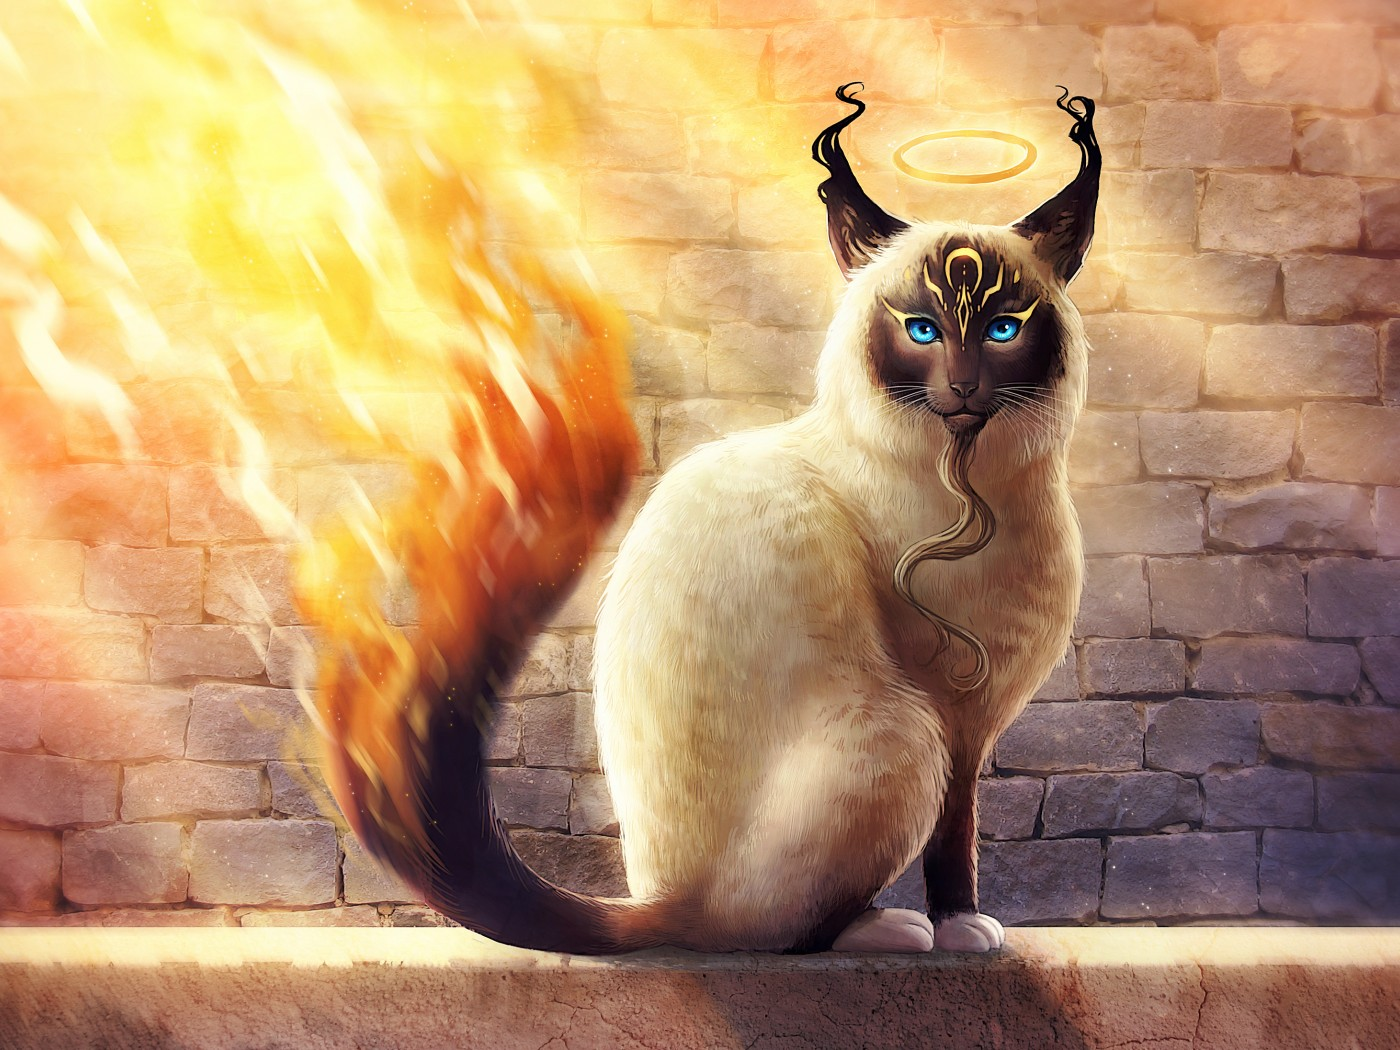 Download Free Birman Catamancer 4K Wallpaper for Desktop and Mobiles